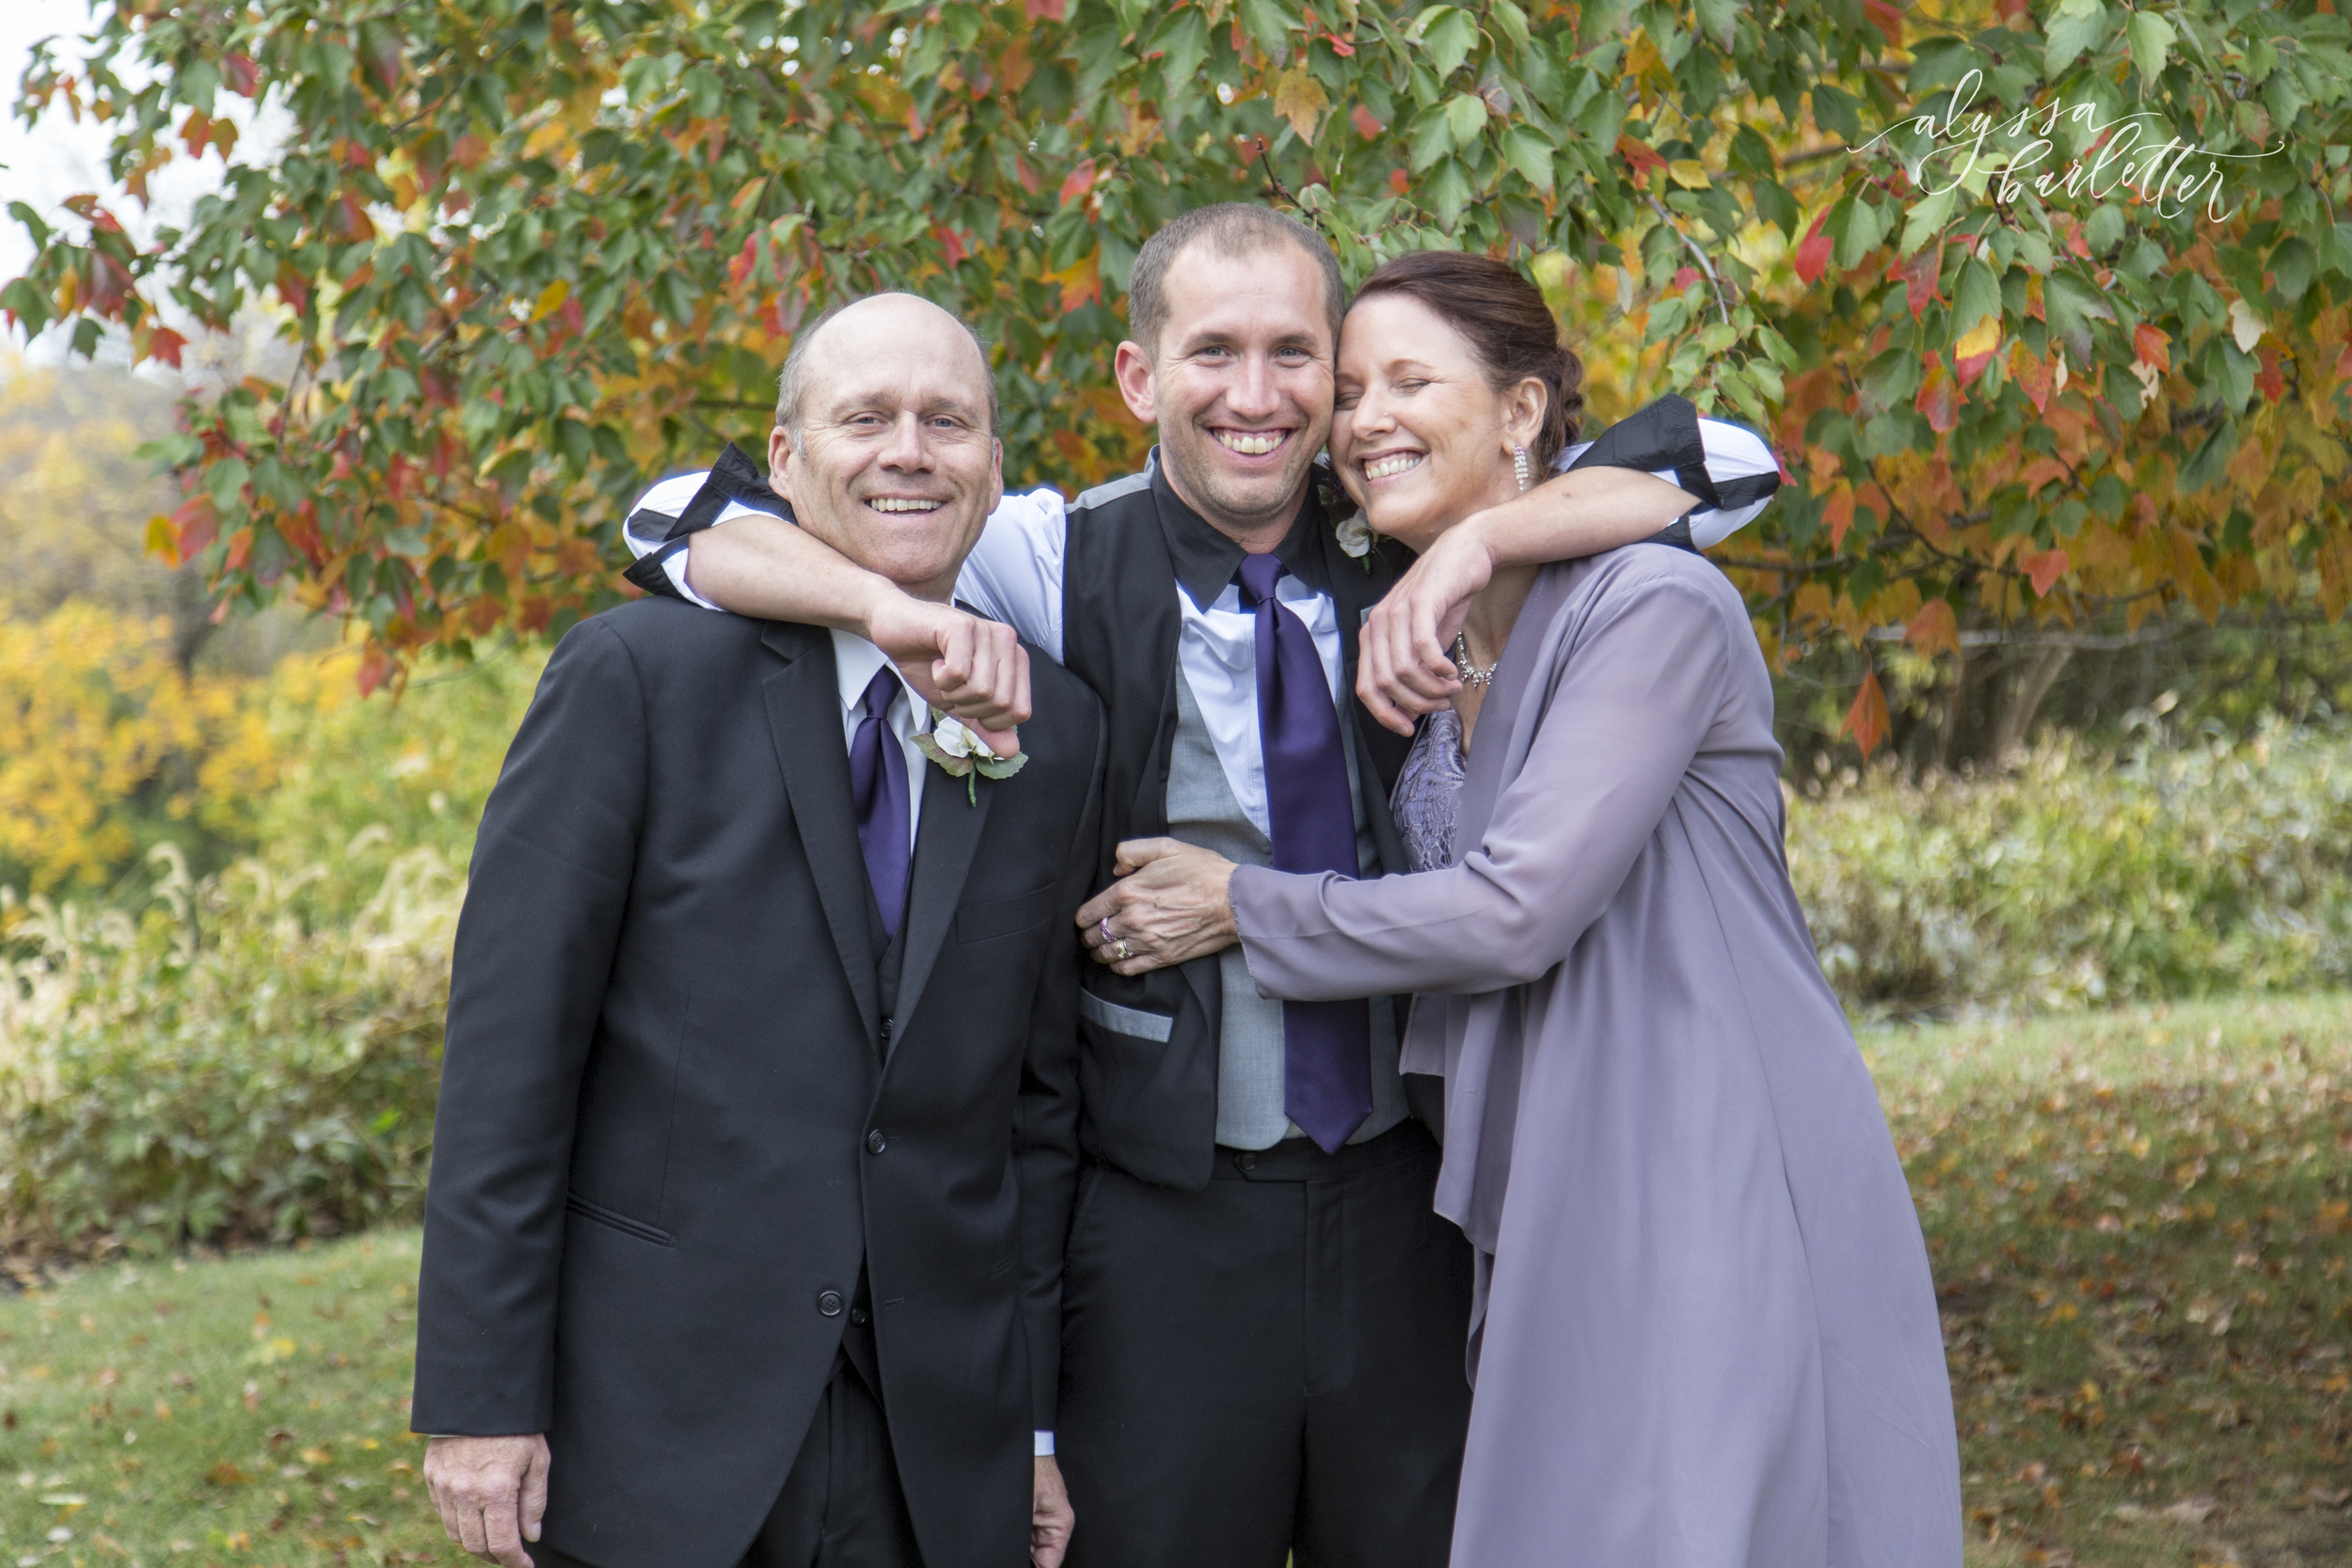 wedding photography family formals group posing fun parents groom